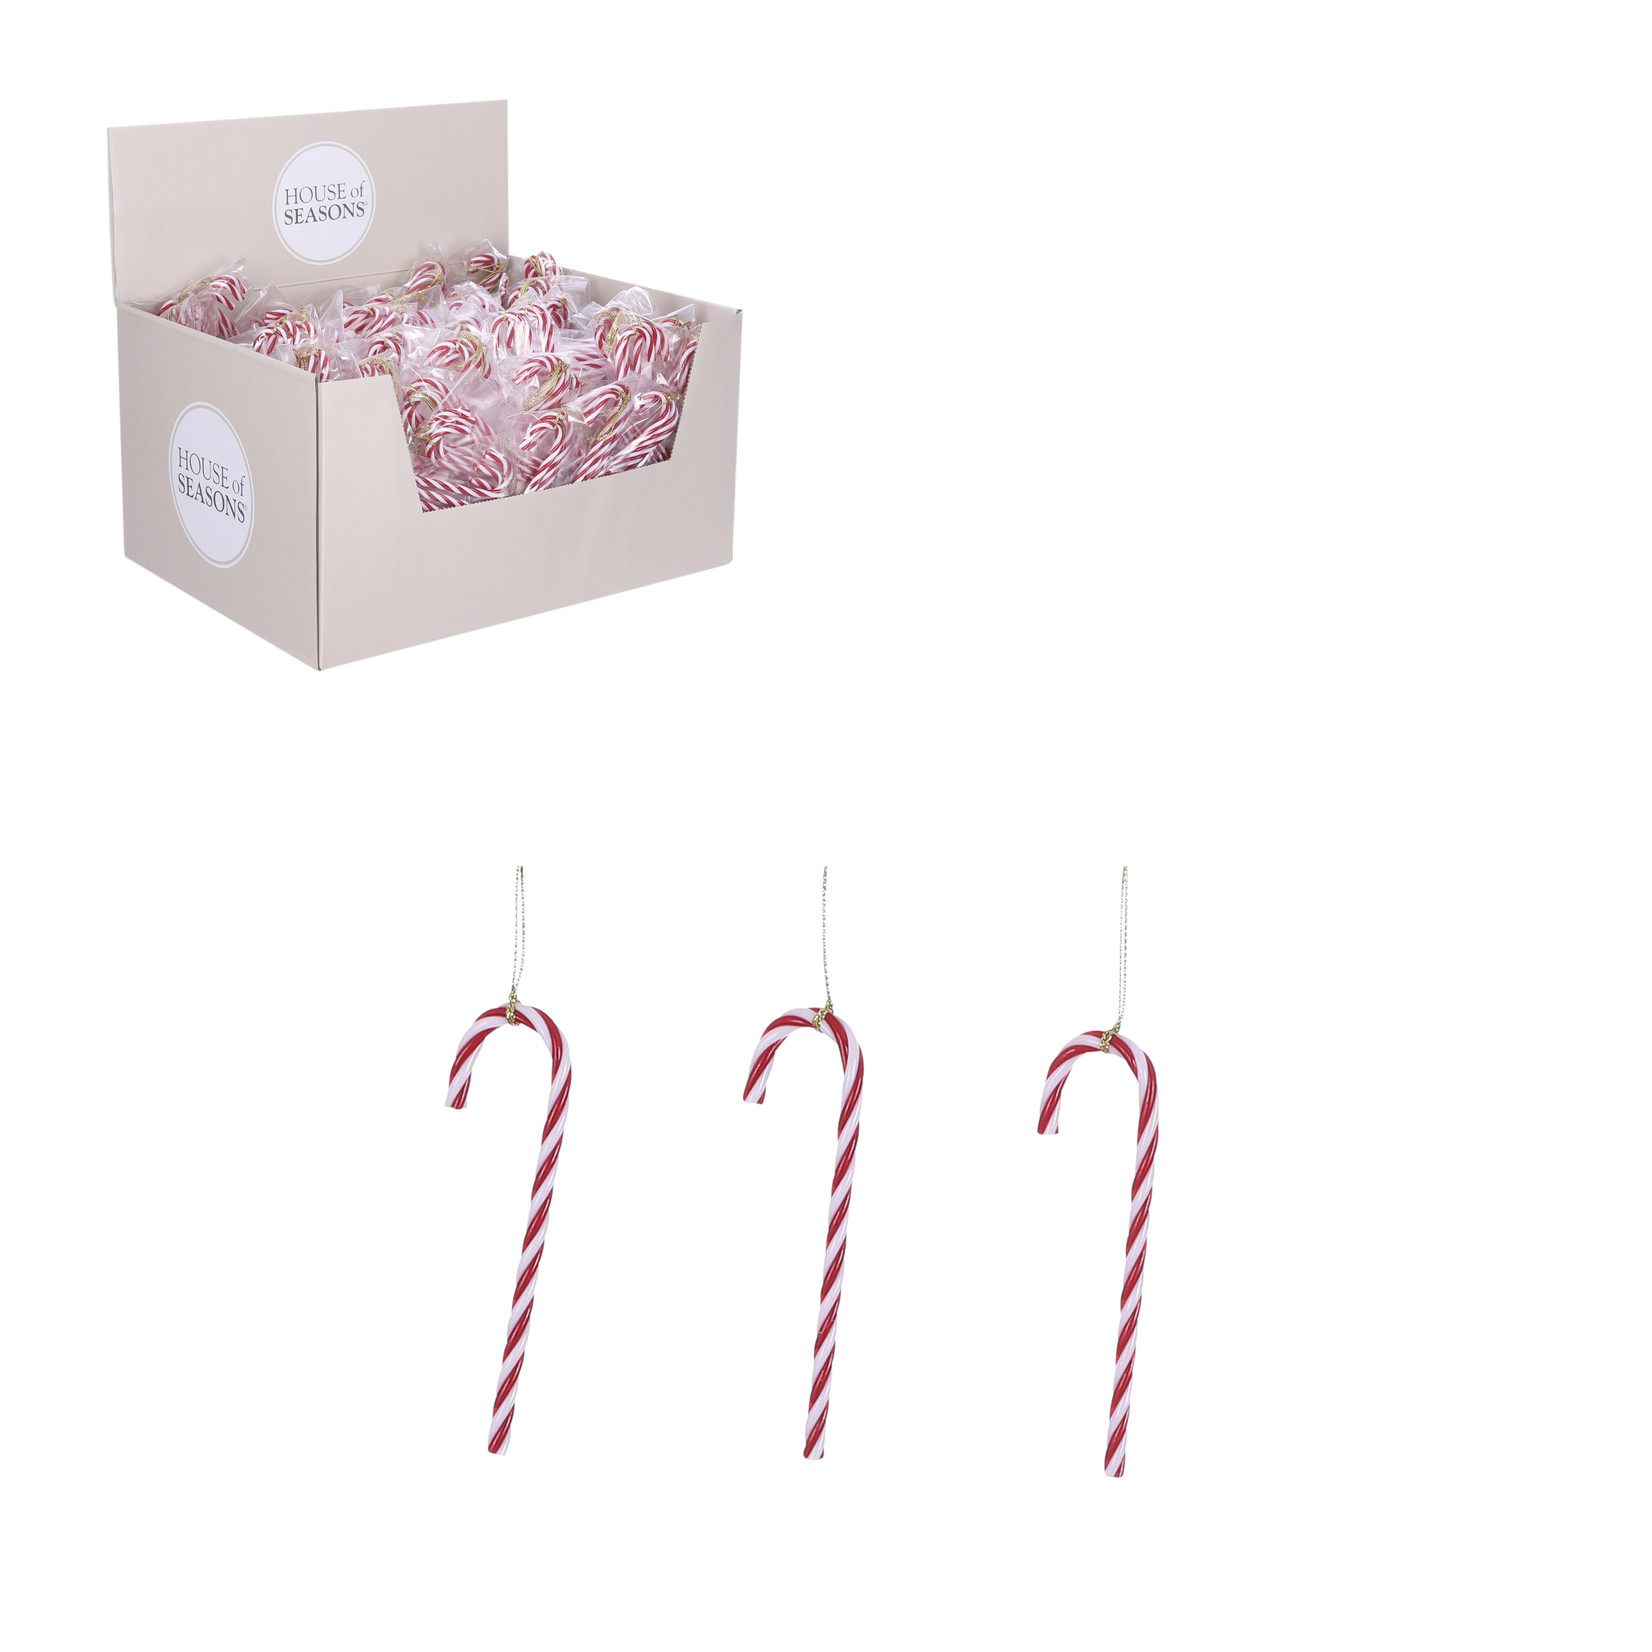 House of Seasons Ornament candy cane red 3 pieces